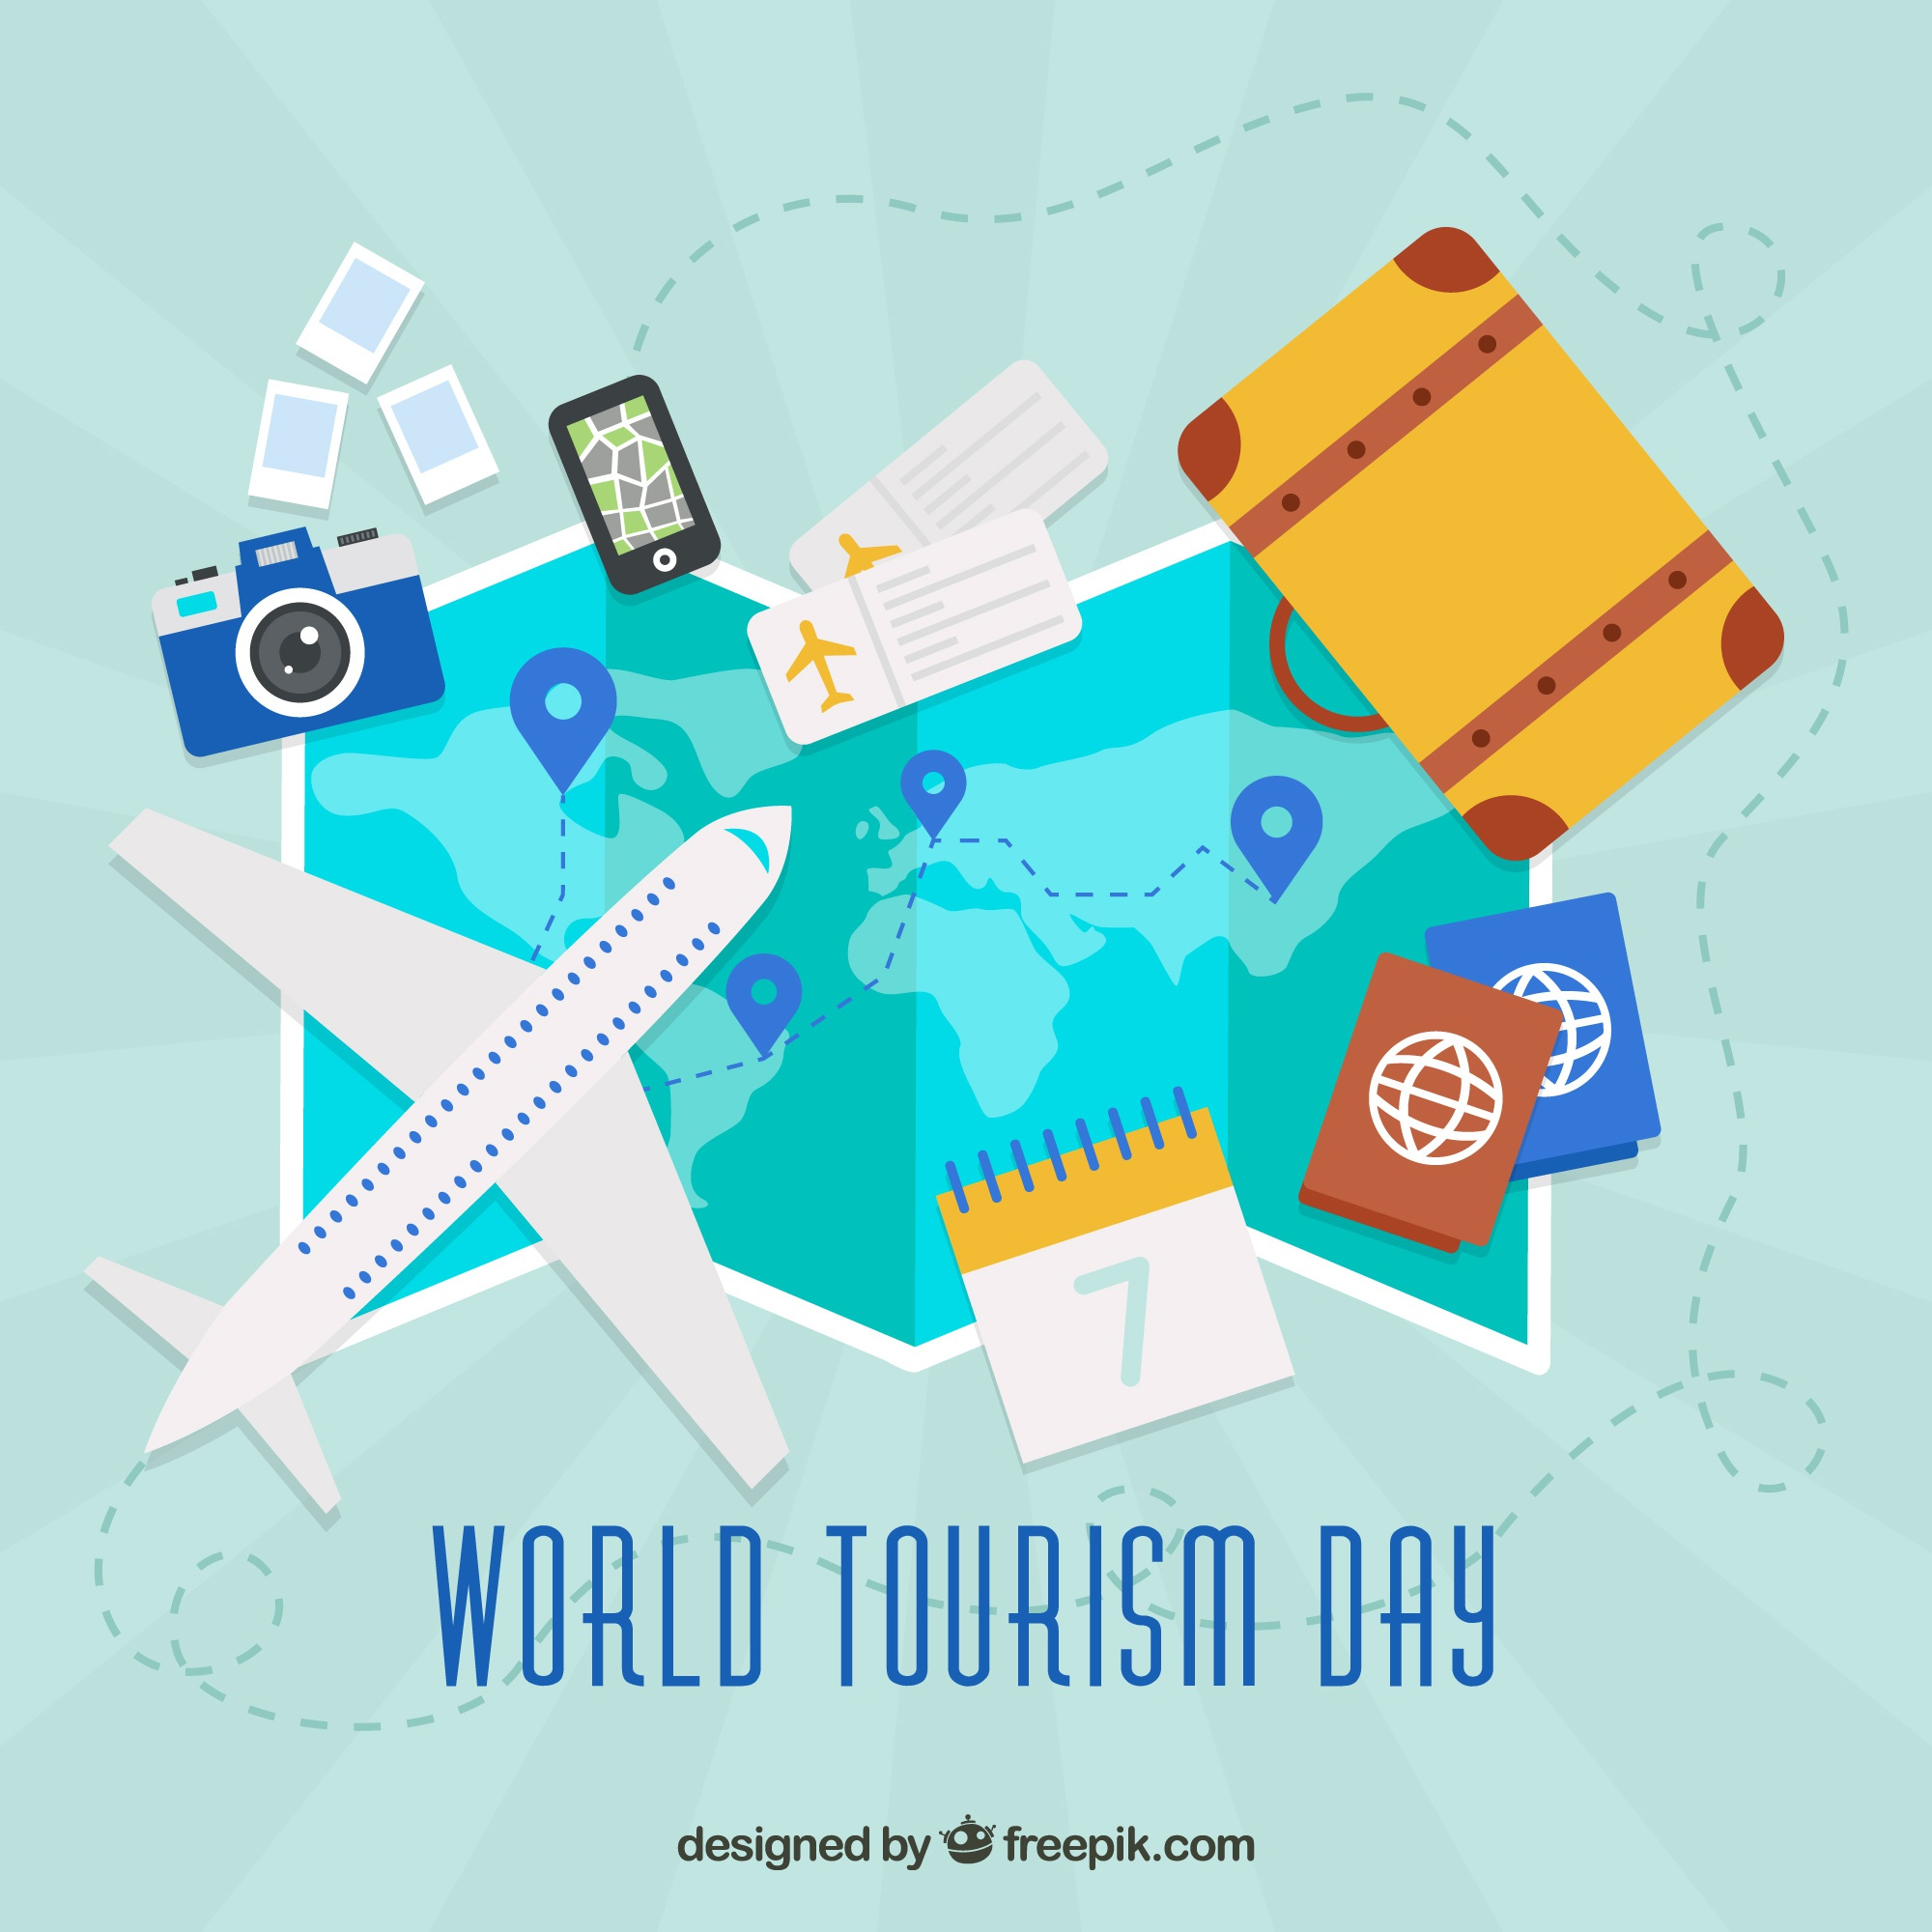 World tourism day, a plane on a map